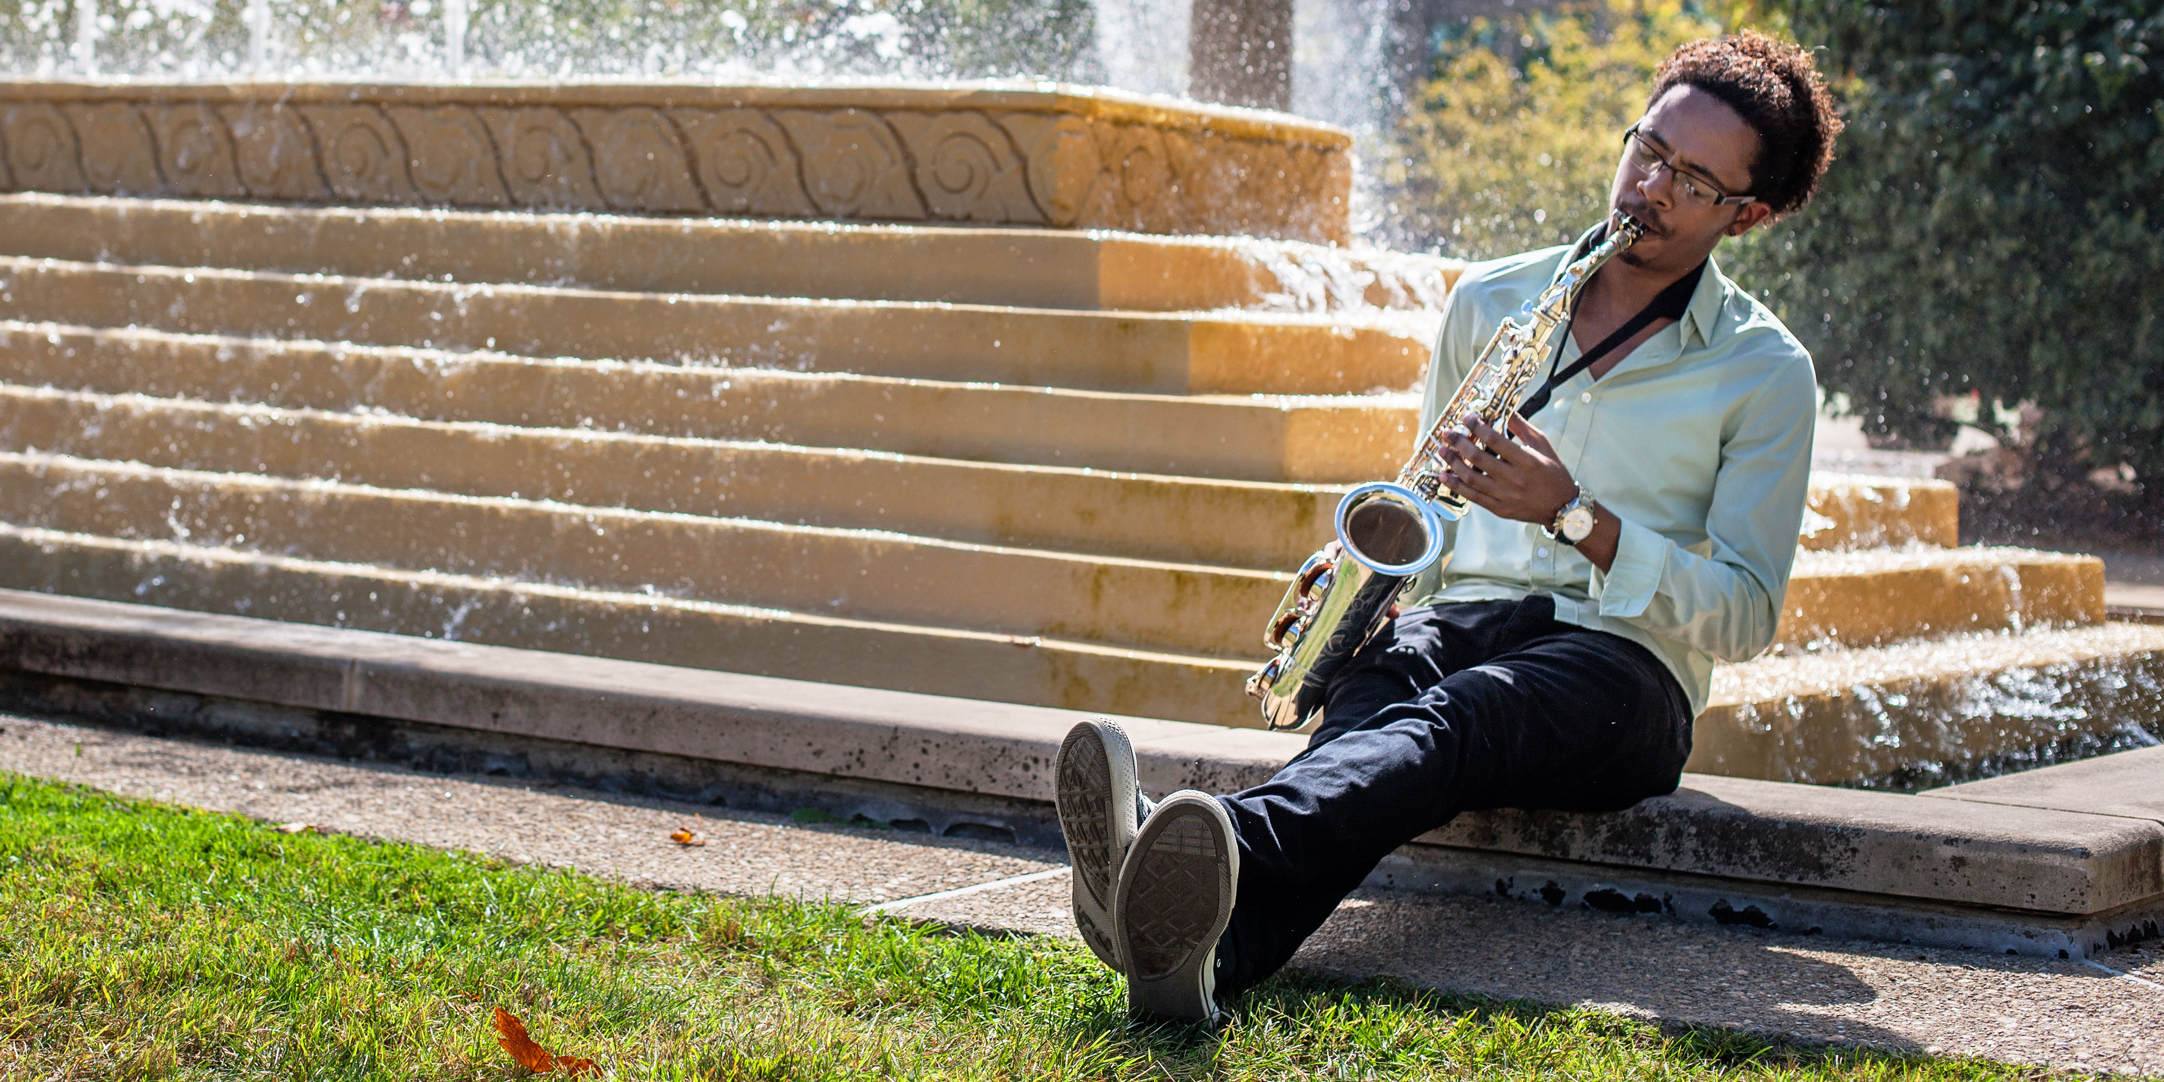 Student plays saxophone outside near a fountain.